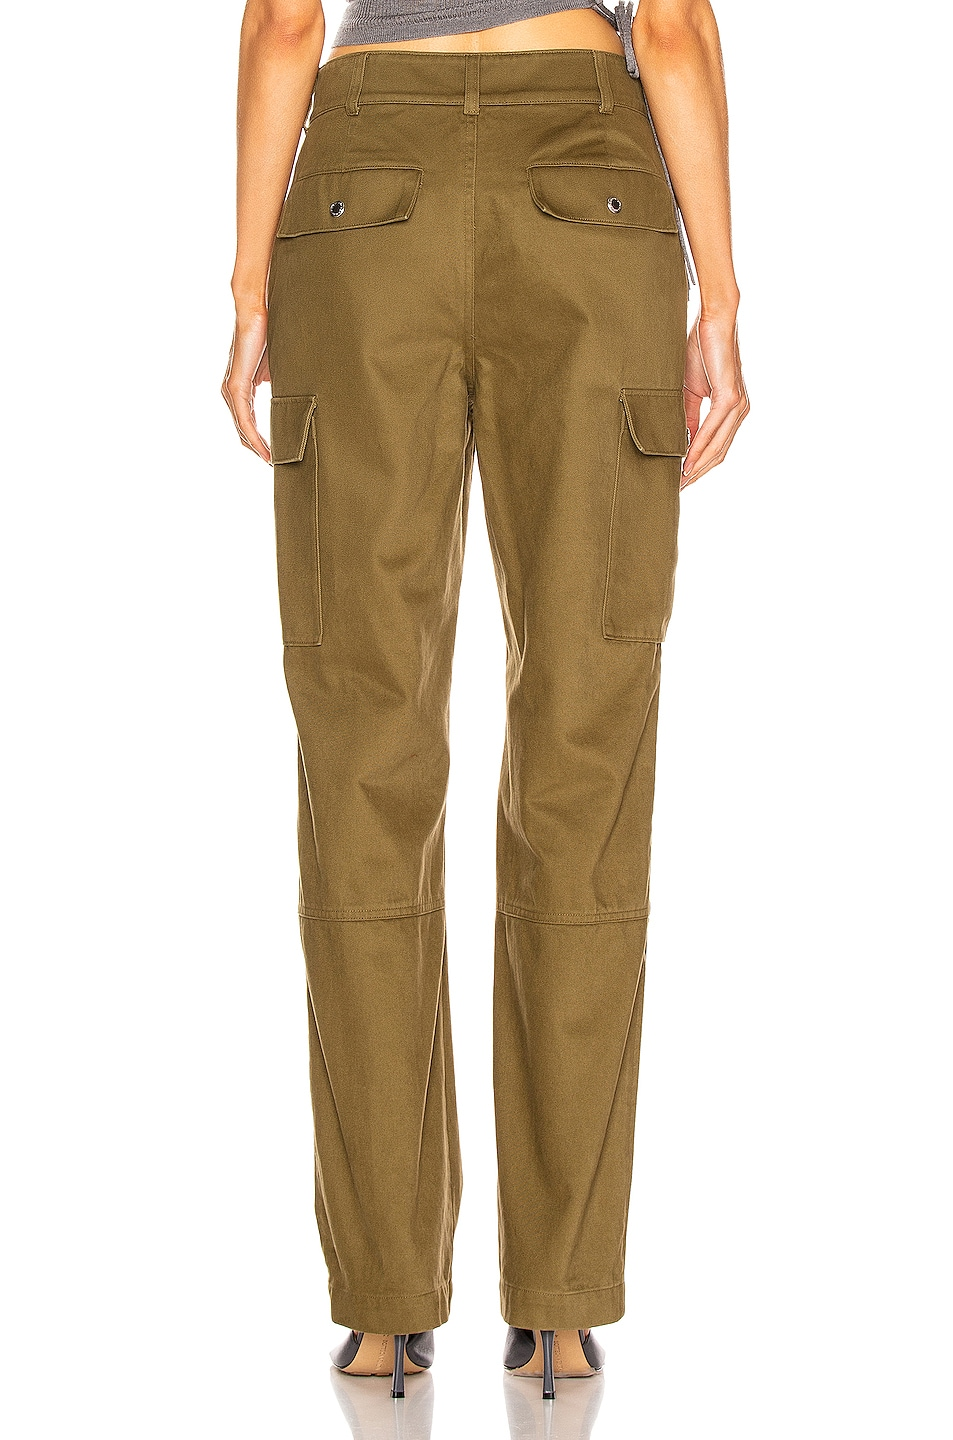 Image 3 of T by Alexander Wang Twill Cargo Pant in Olive